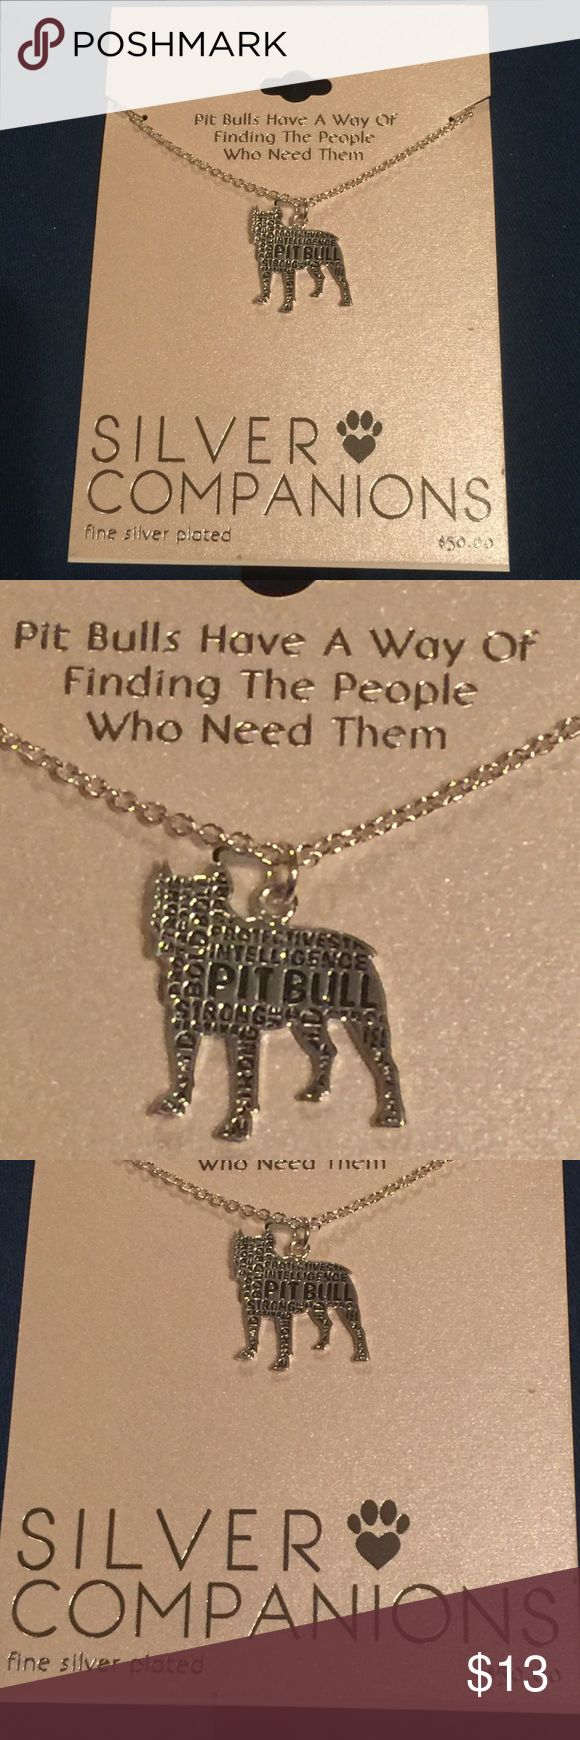 NWT silver plated pitt bull necklace It has a pitt bull shaped pendant with words that describe pitt bulls. Bundle and get $3 off. Can't be combined with other offers. Jewelry Necklaces